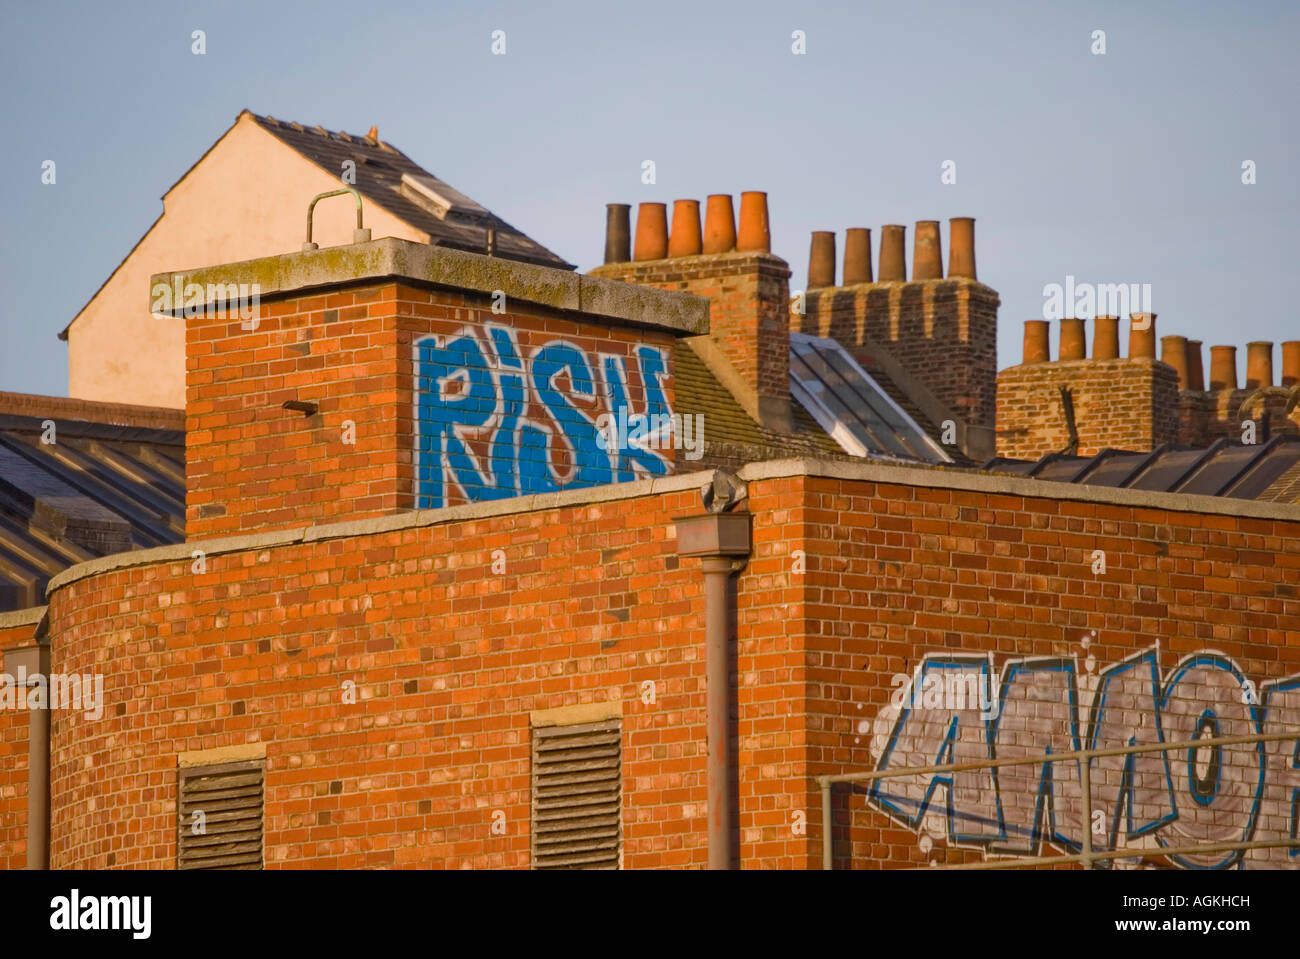 rooftops with graffitti on walls - Stock Image